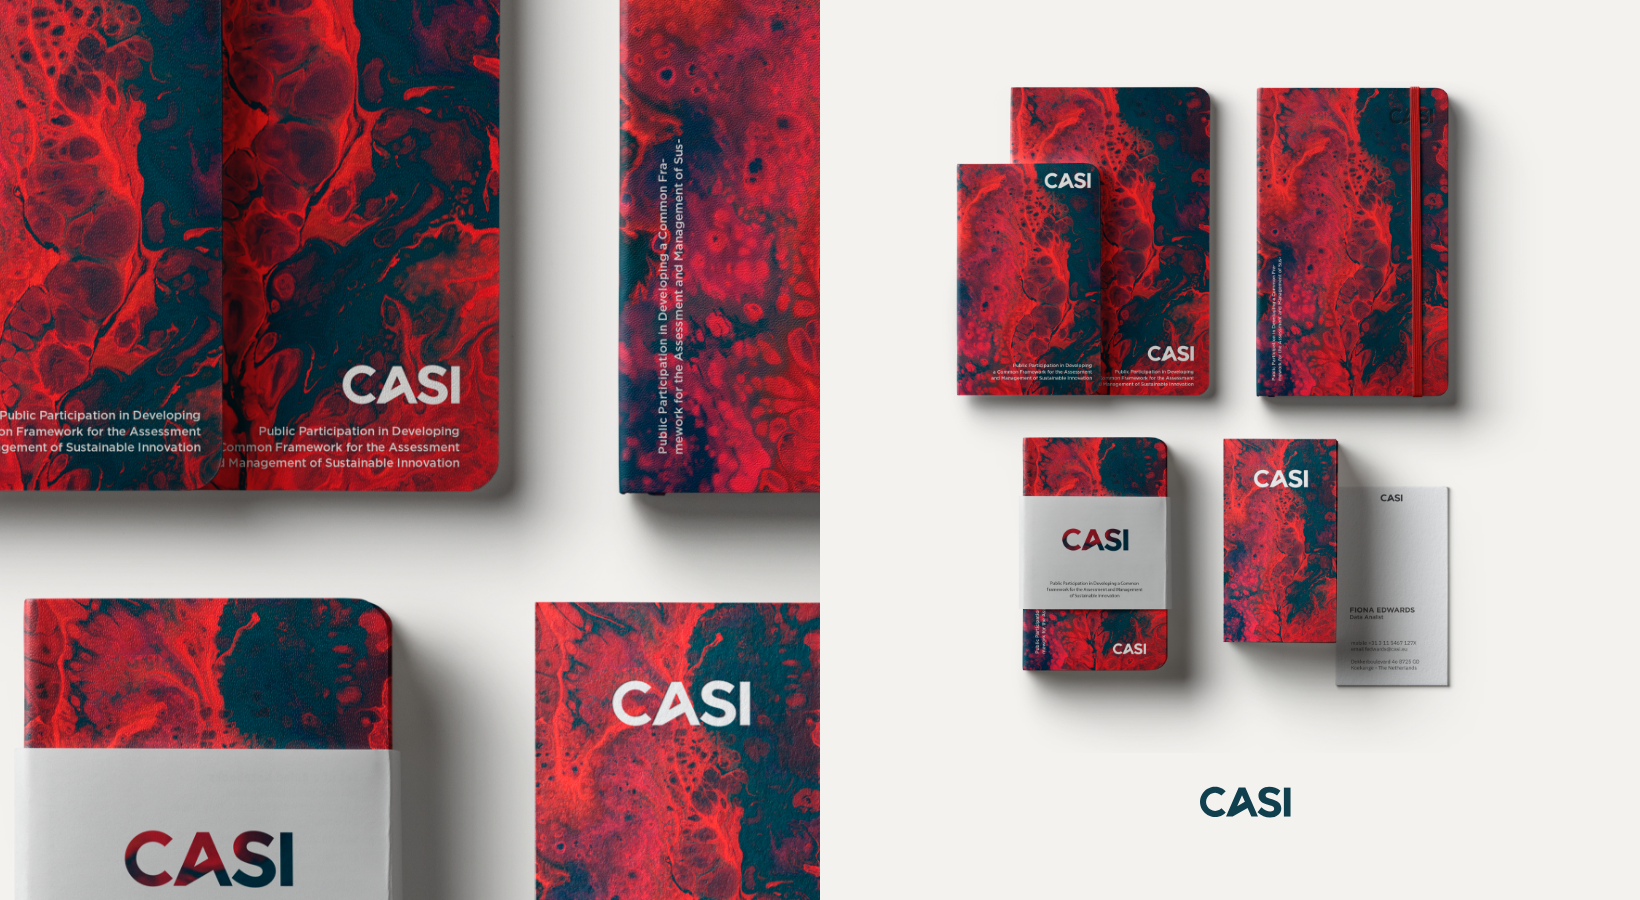 CASI 1640x900 – Stationary.png